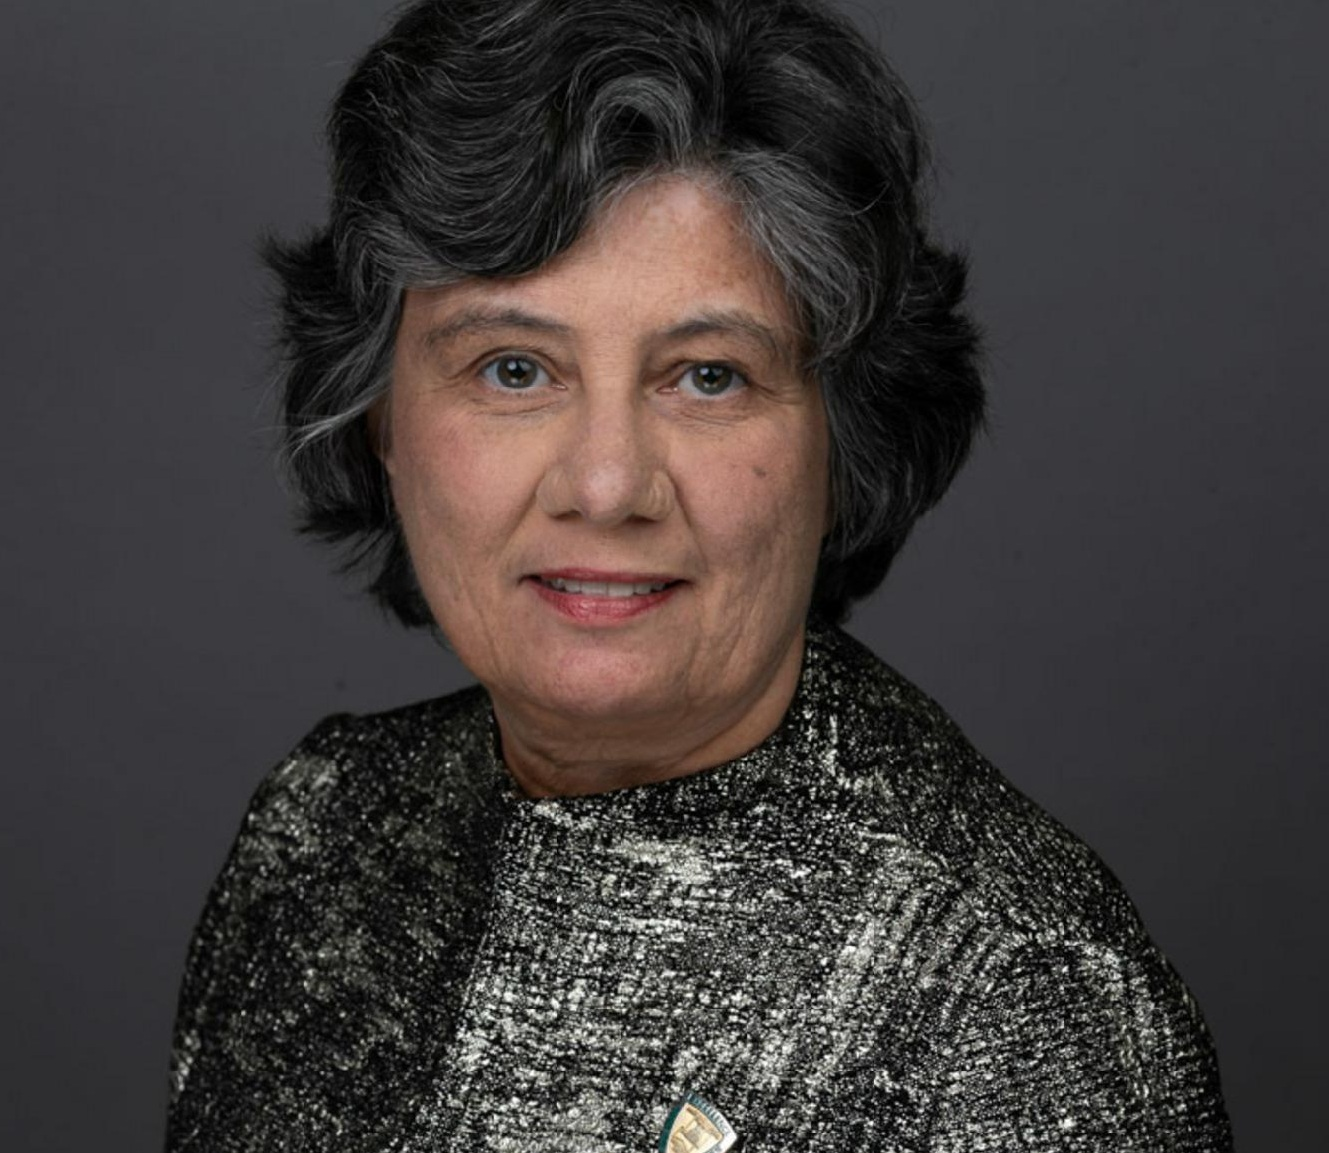 Potential Speaker for Nursing Conference- Mary Fanning